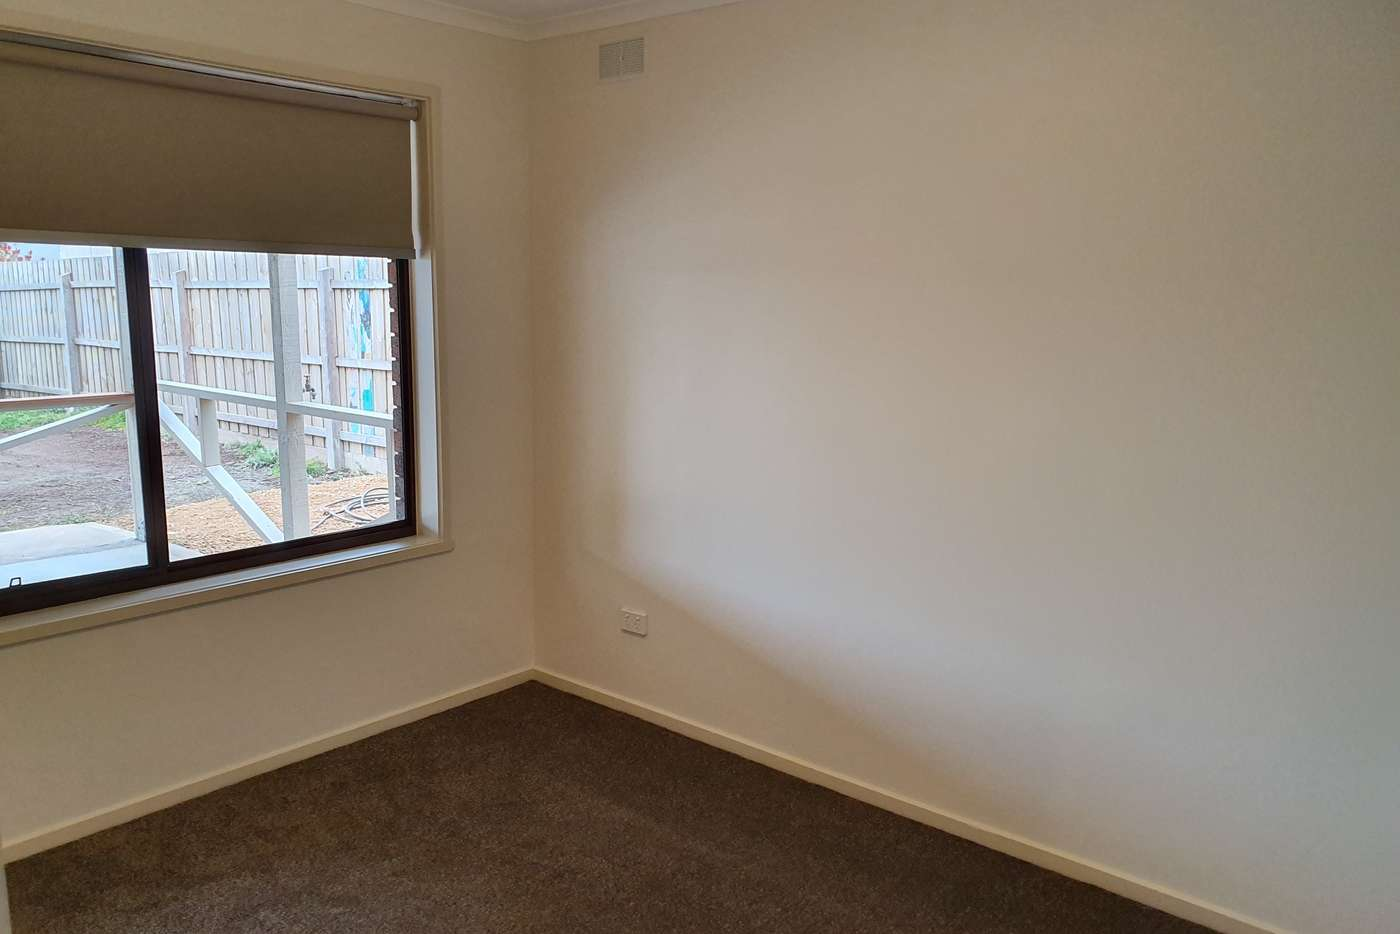 Seventh view of Homely house listing, 16 William Street, Romsey VIC 3434